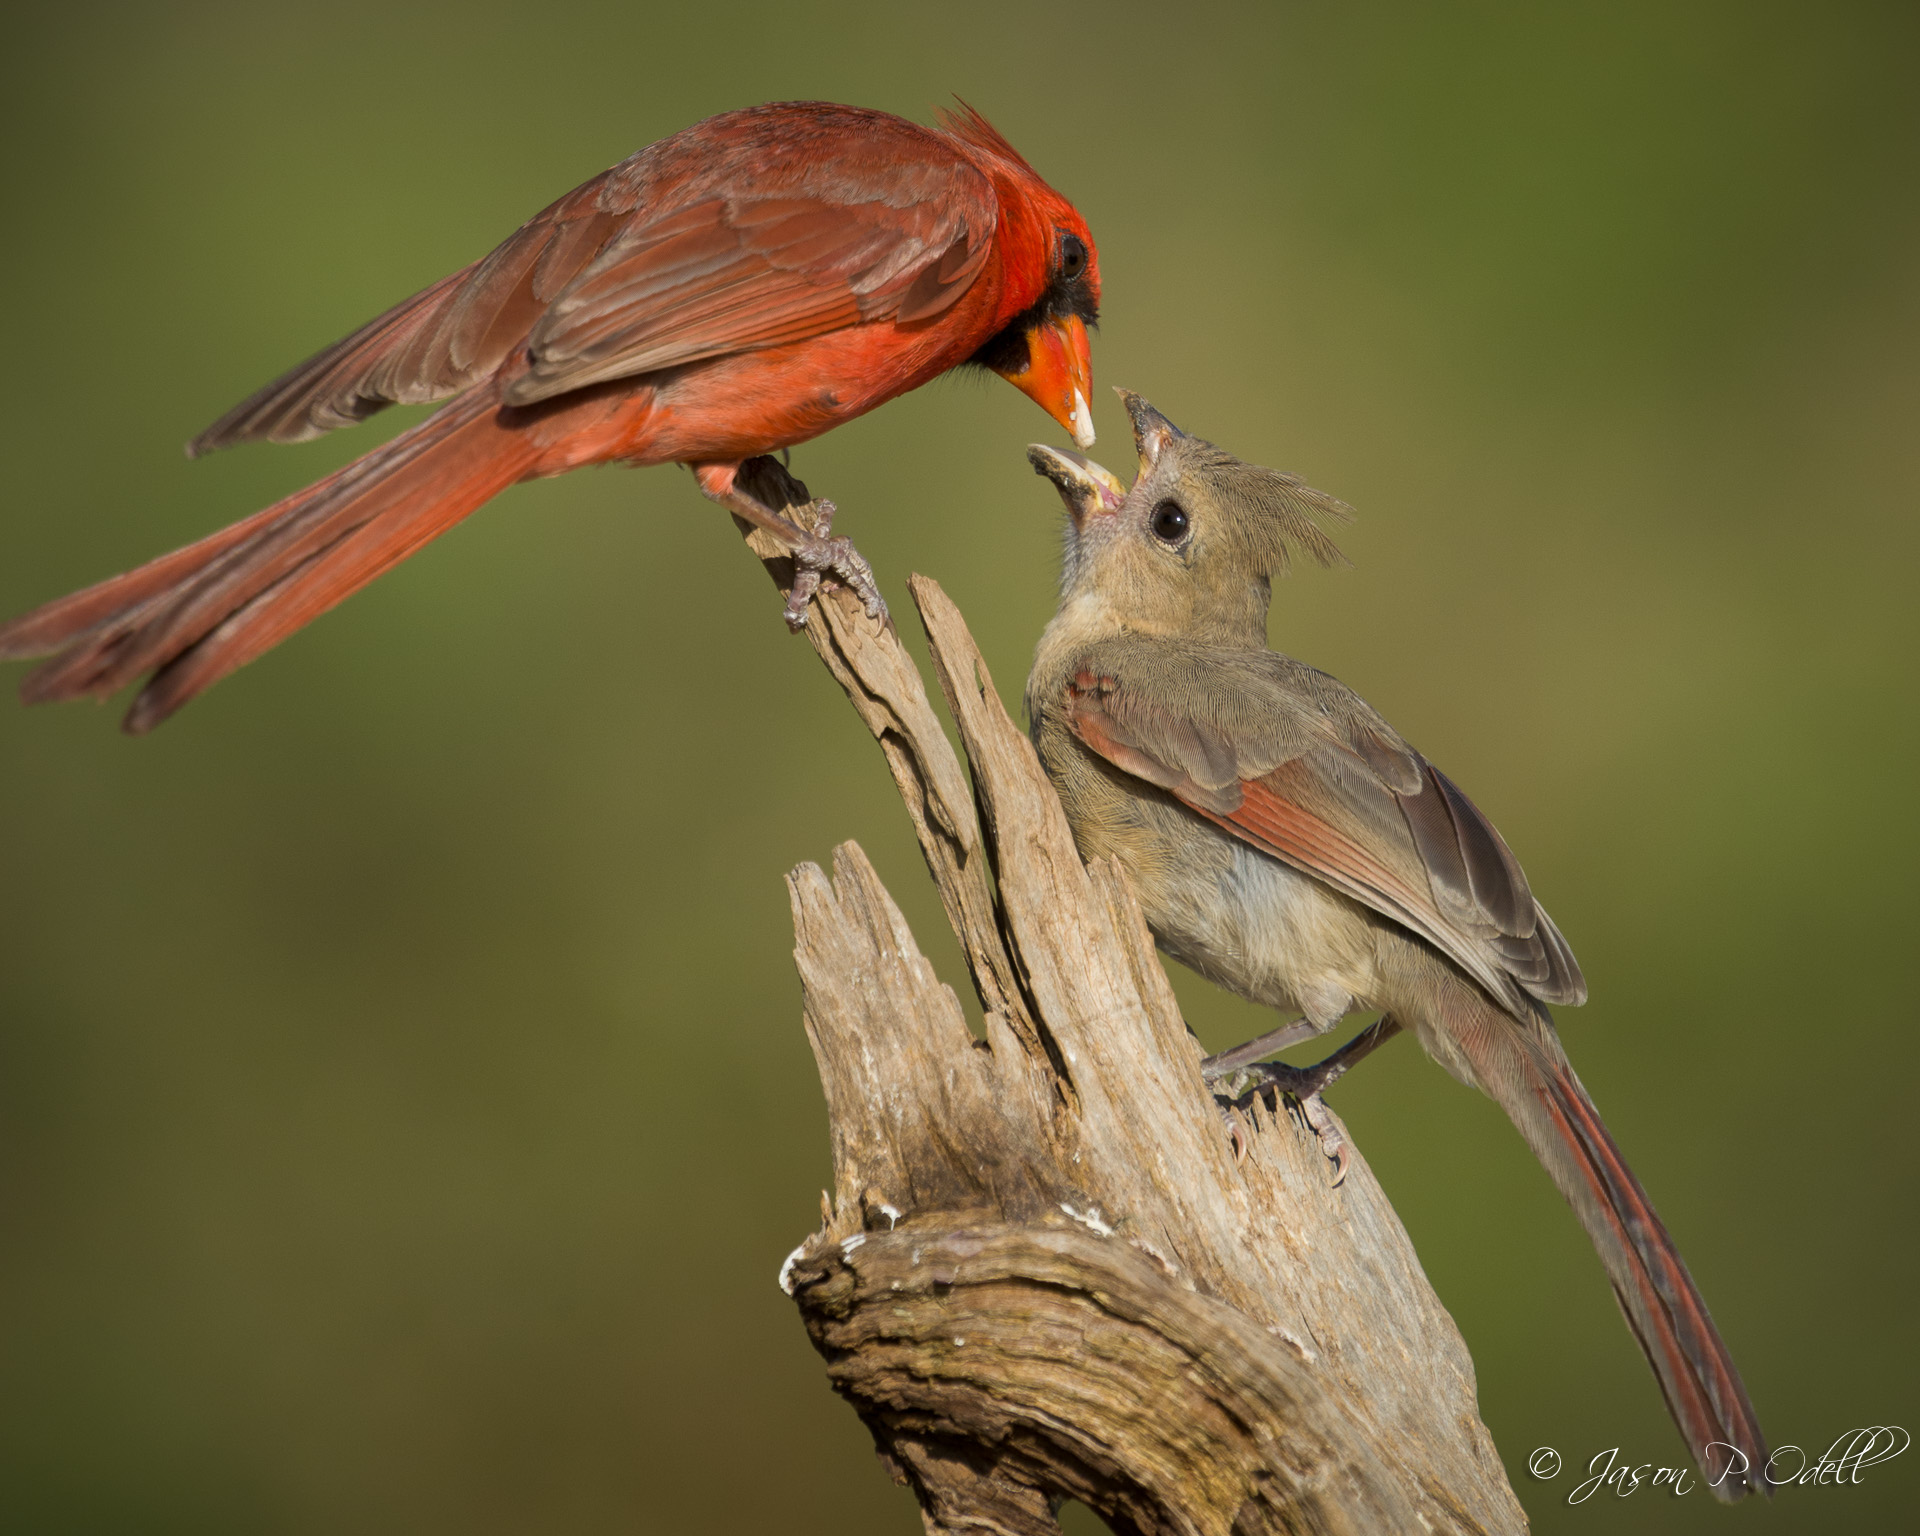 Northern cardinal and fledgling, south Texas